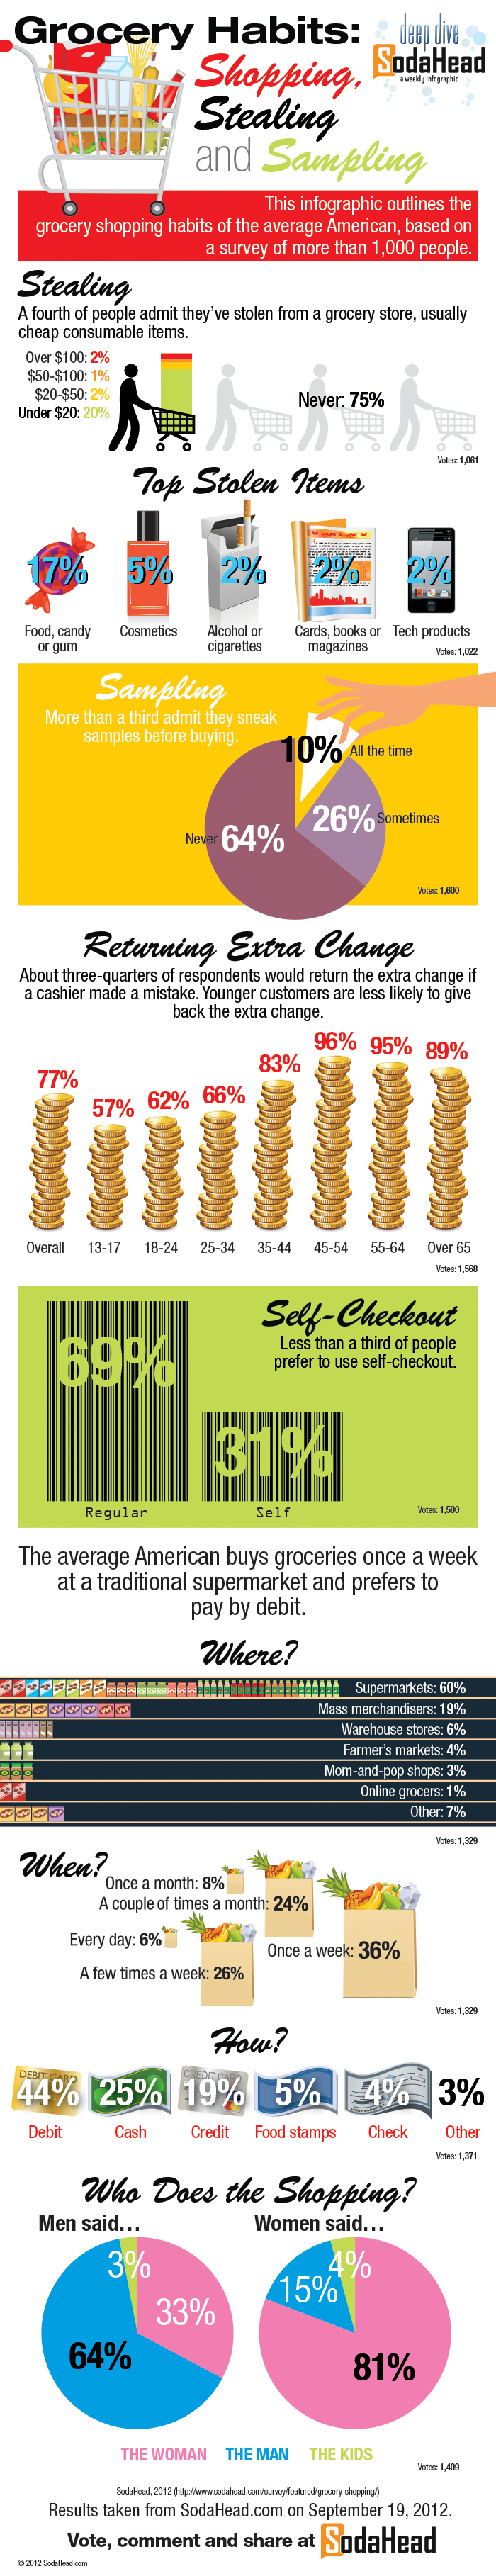 Grocery Shopping Trends